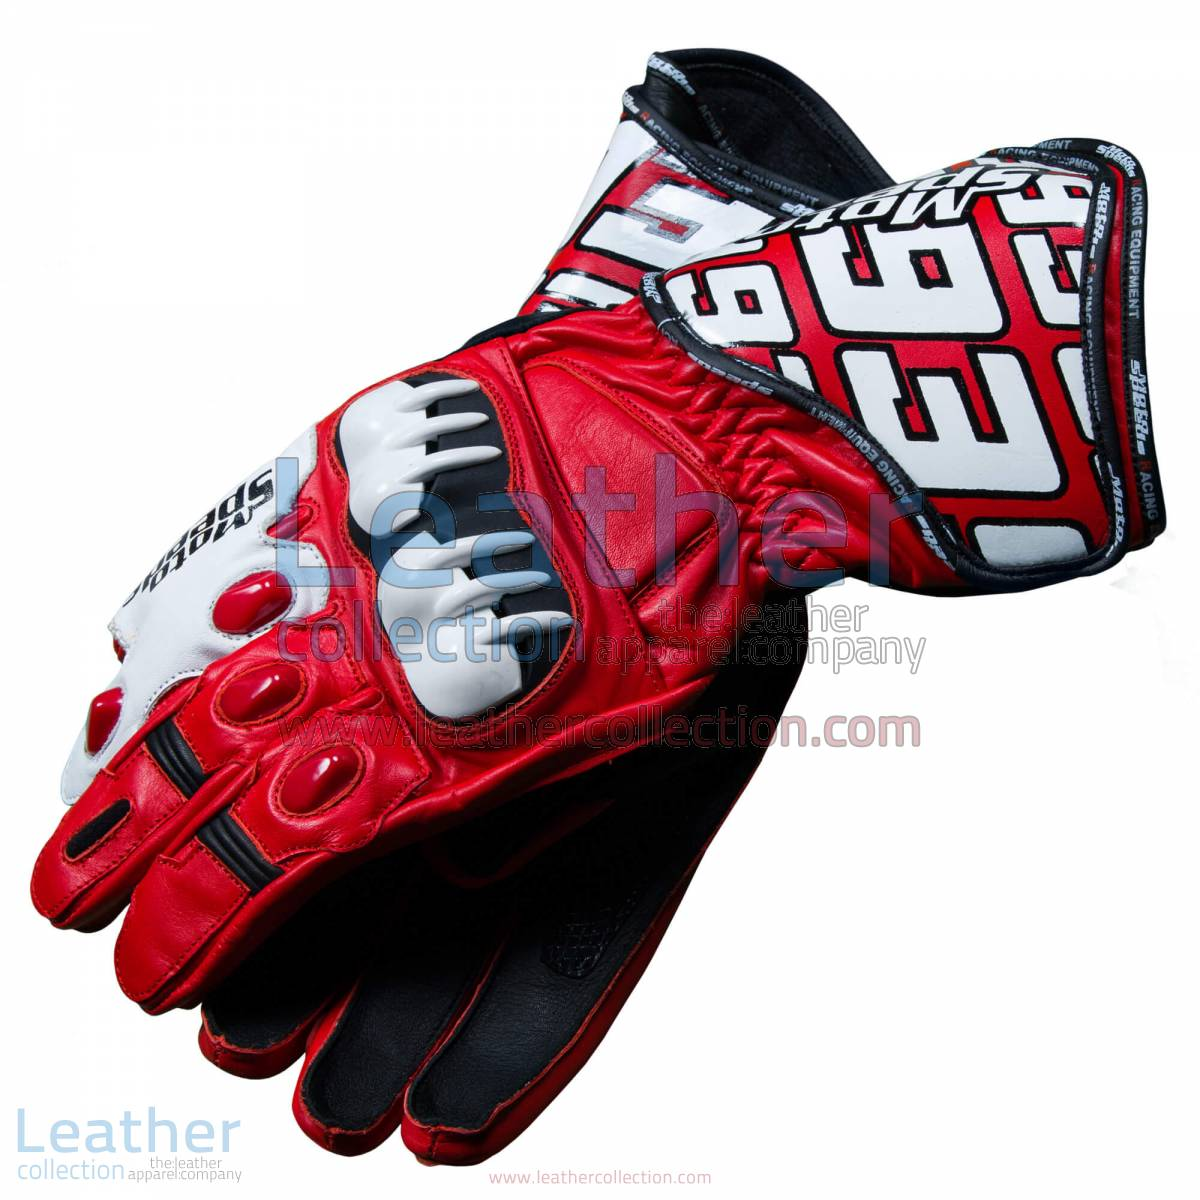 Honda Repsol 2013 Marquez Leather Gloves